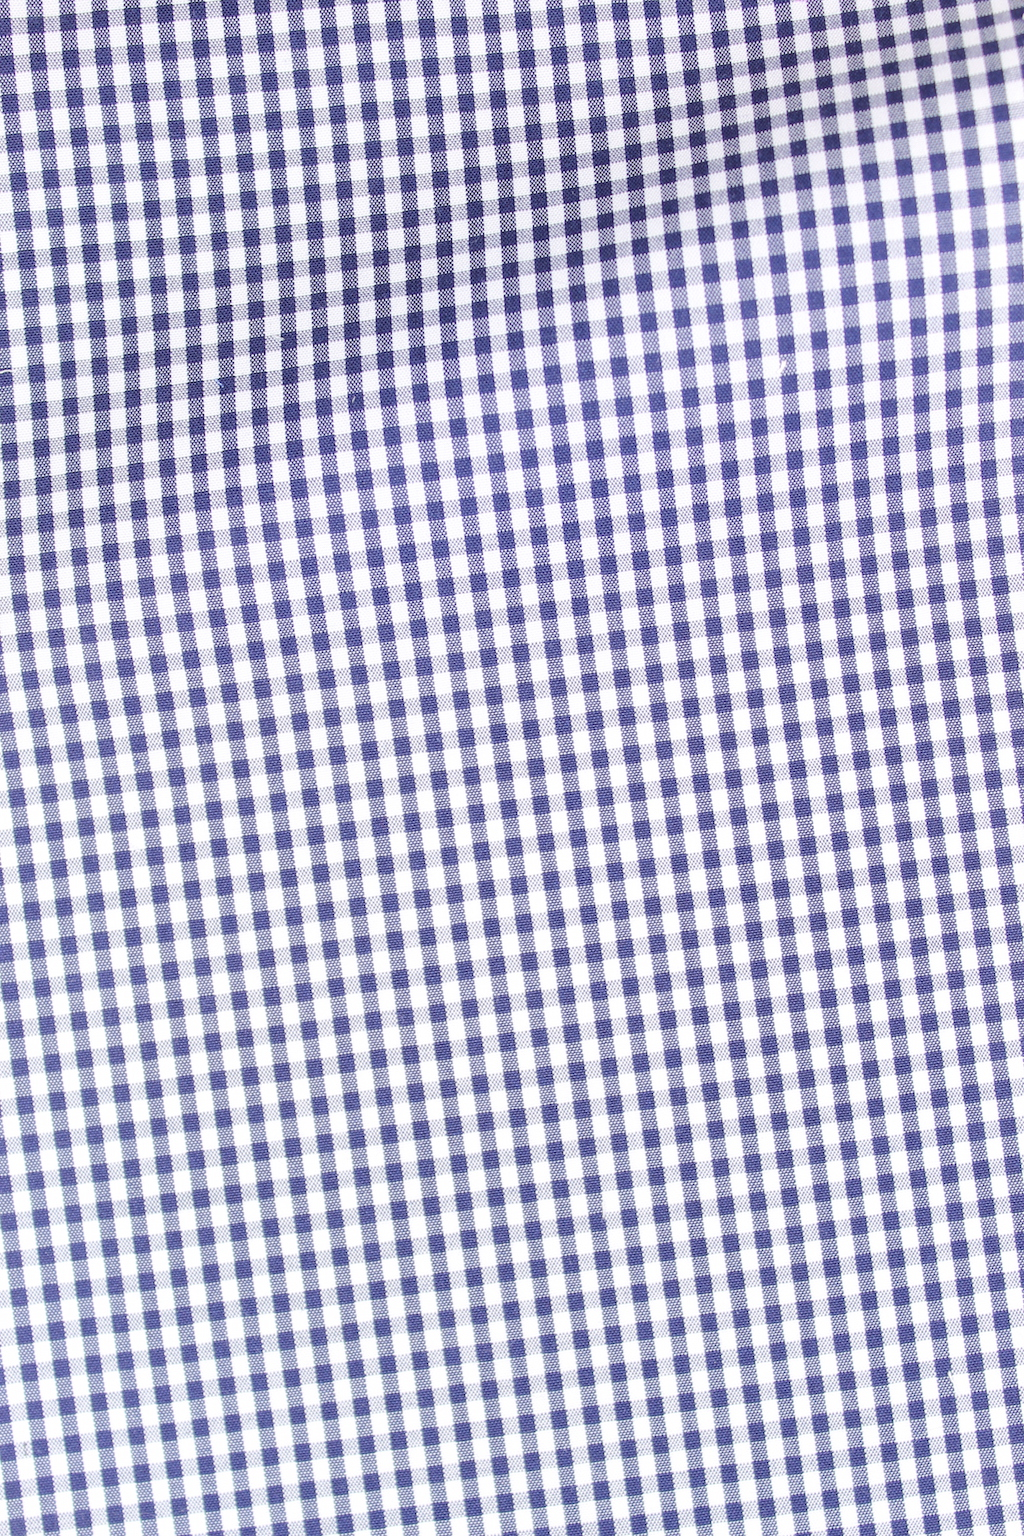 6606 Navy Gingham small.JPG